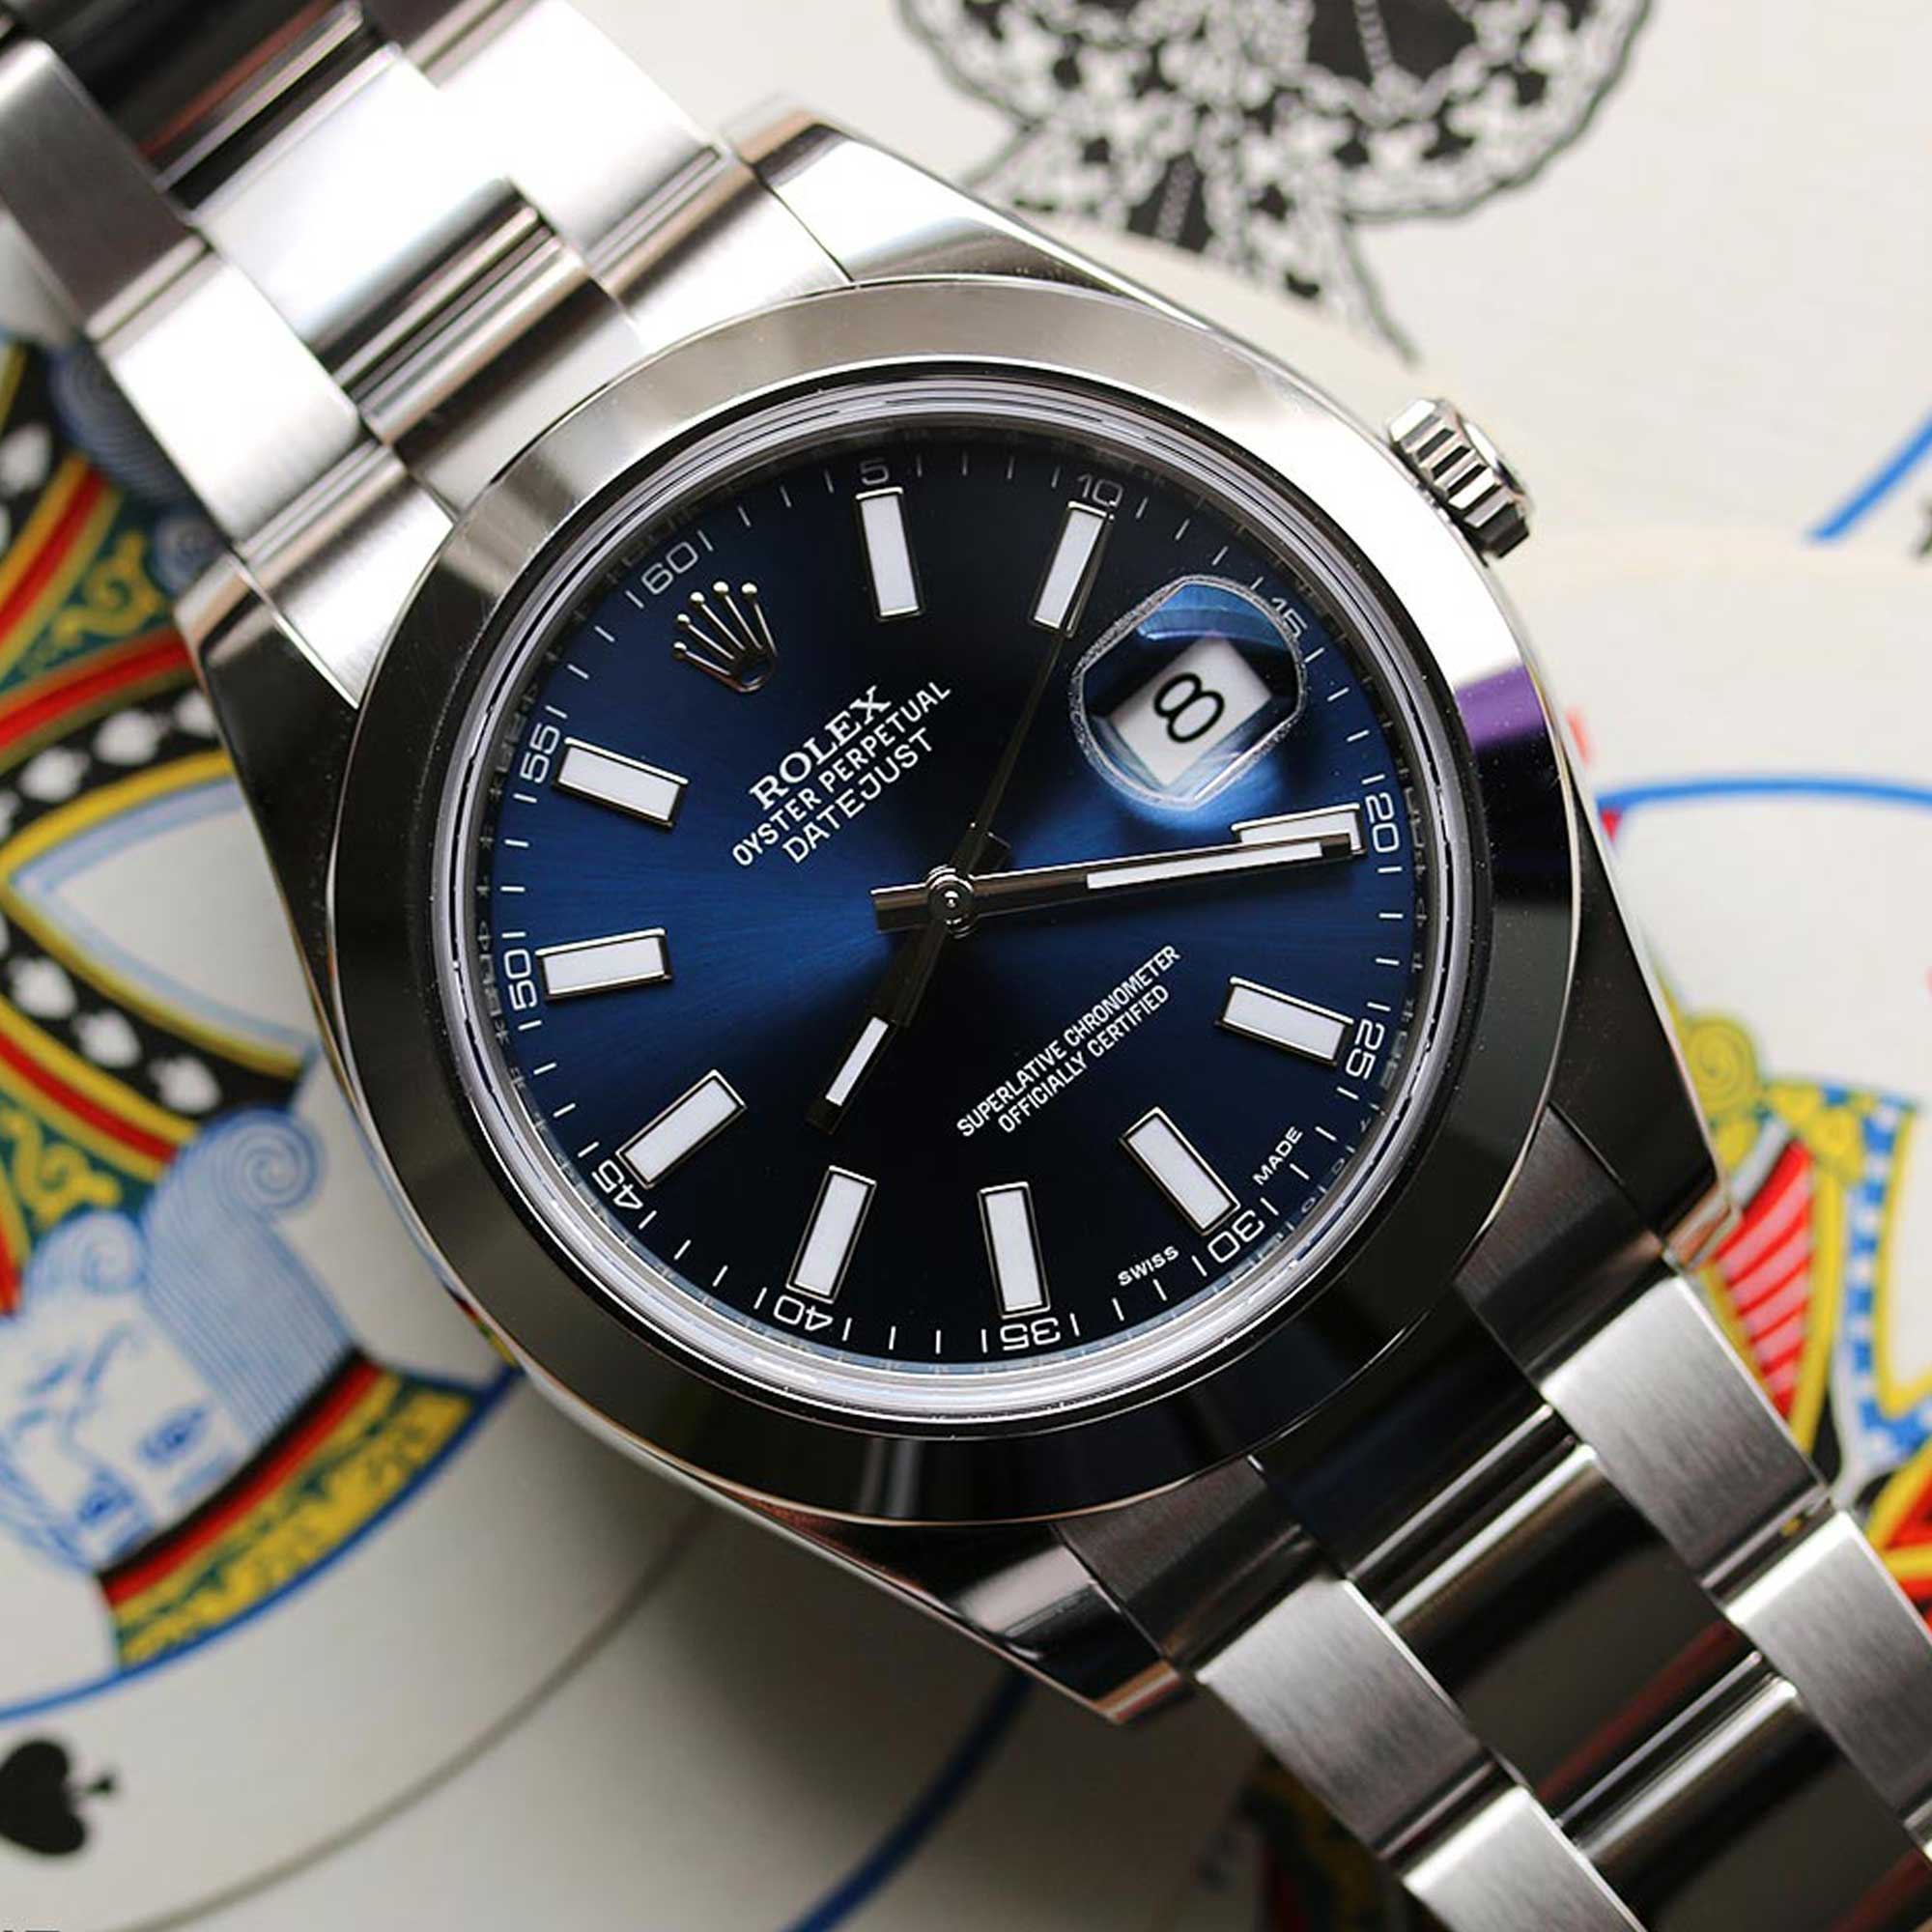 0bc823cac2a Rolex Datejust II 41mm Big Size Blue Stick Dial 116300